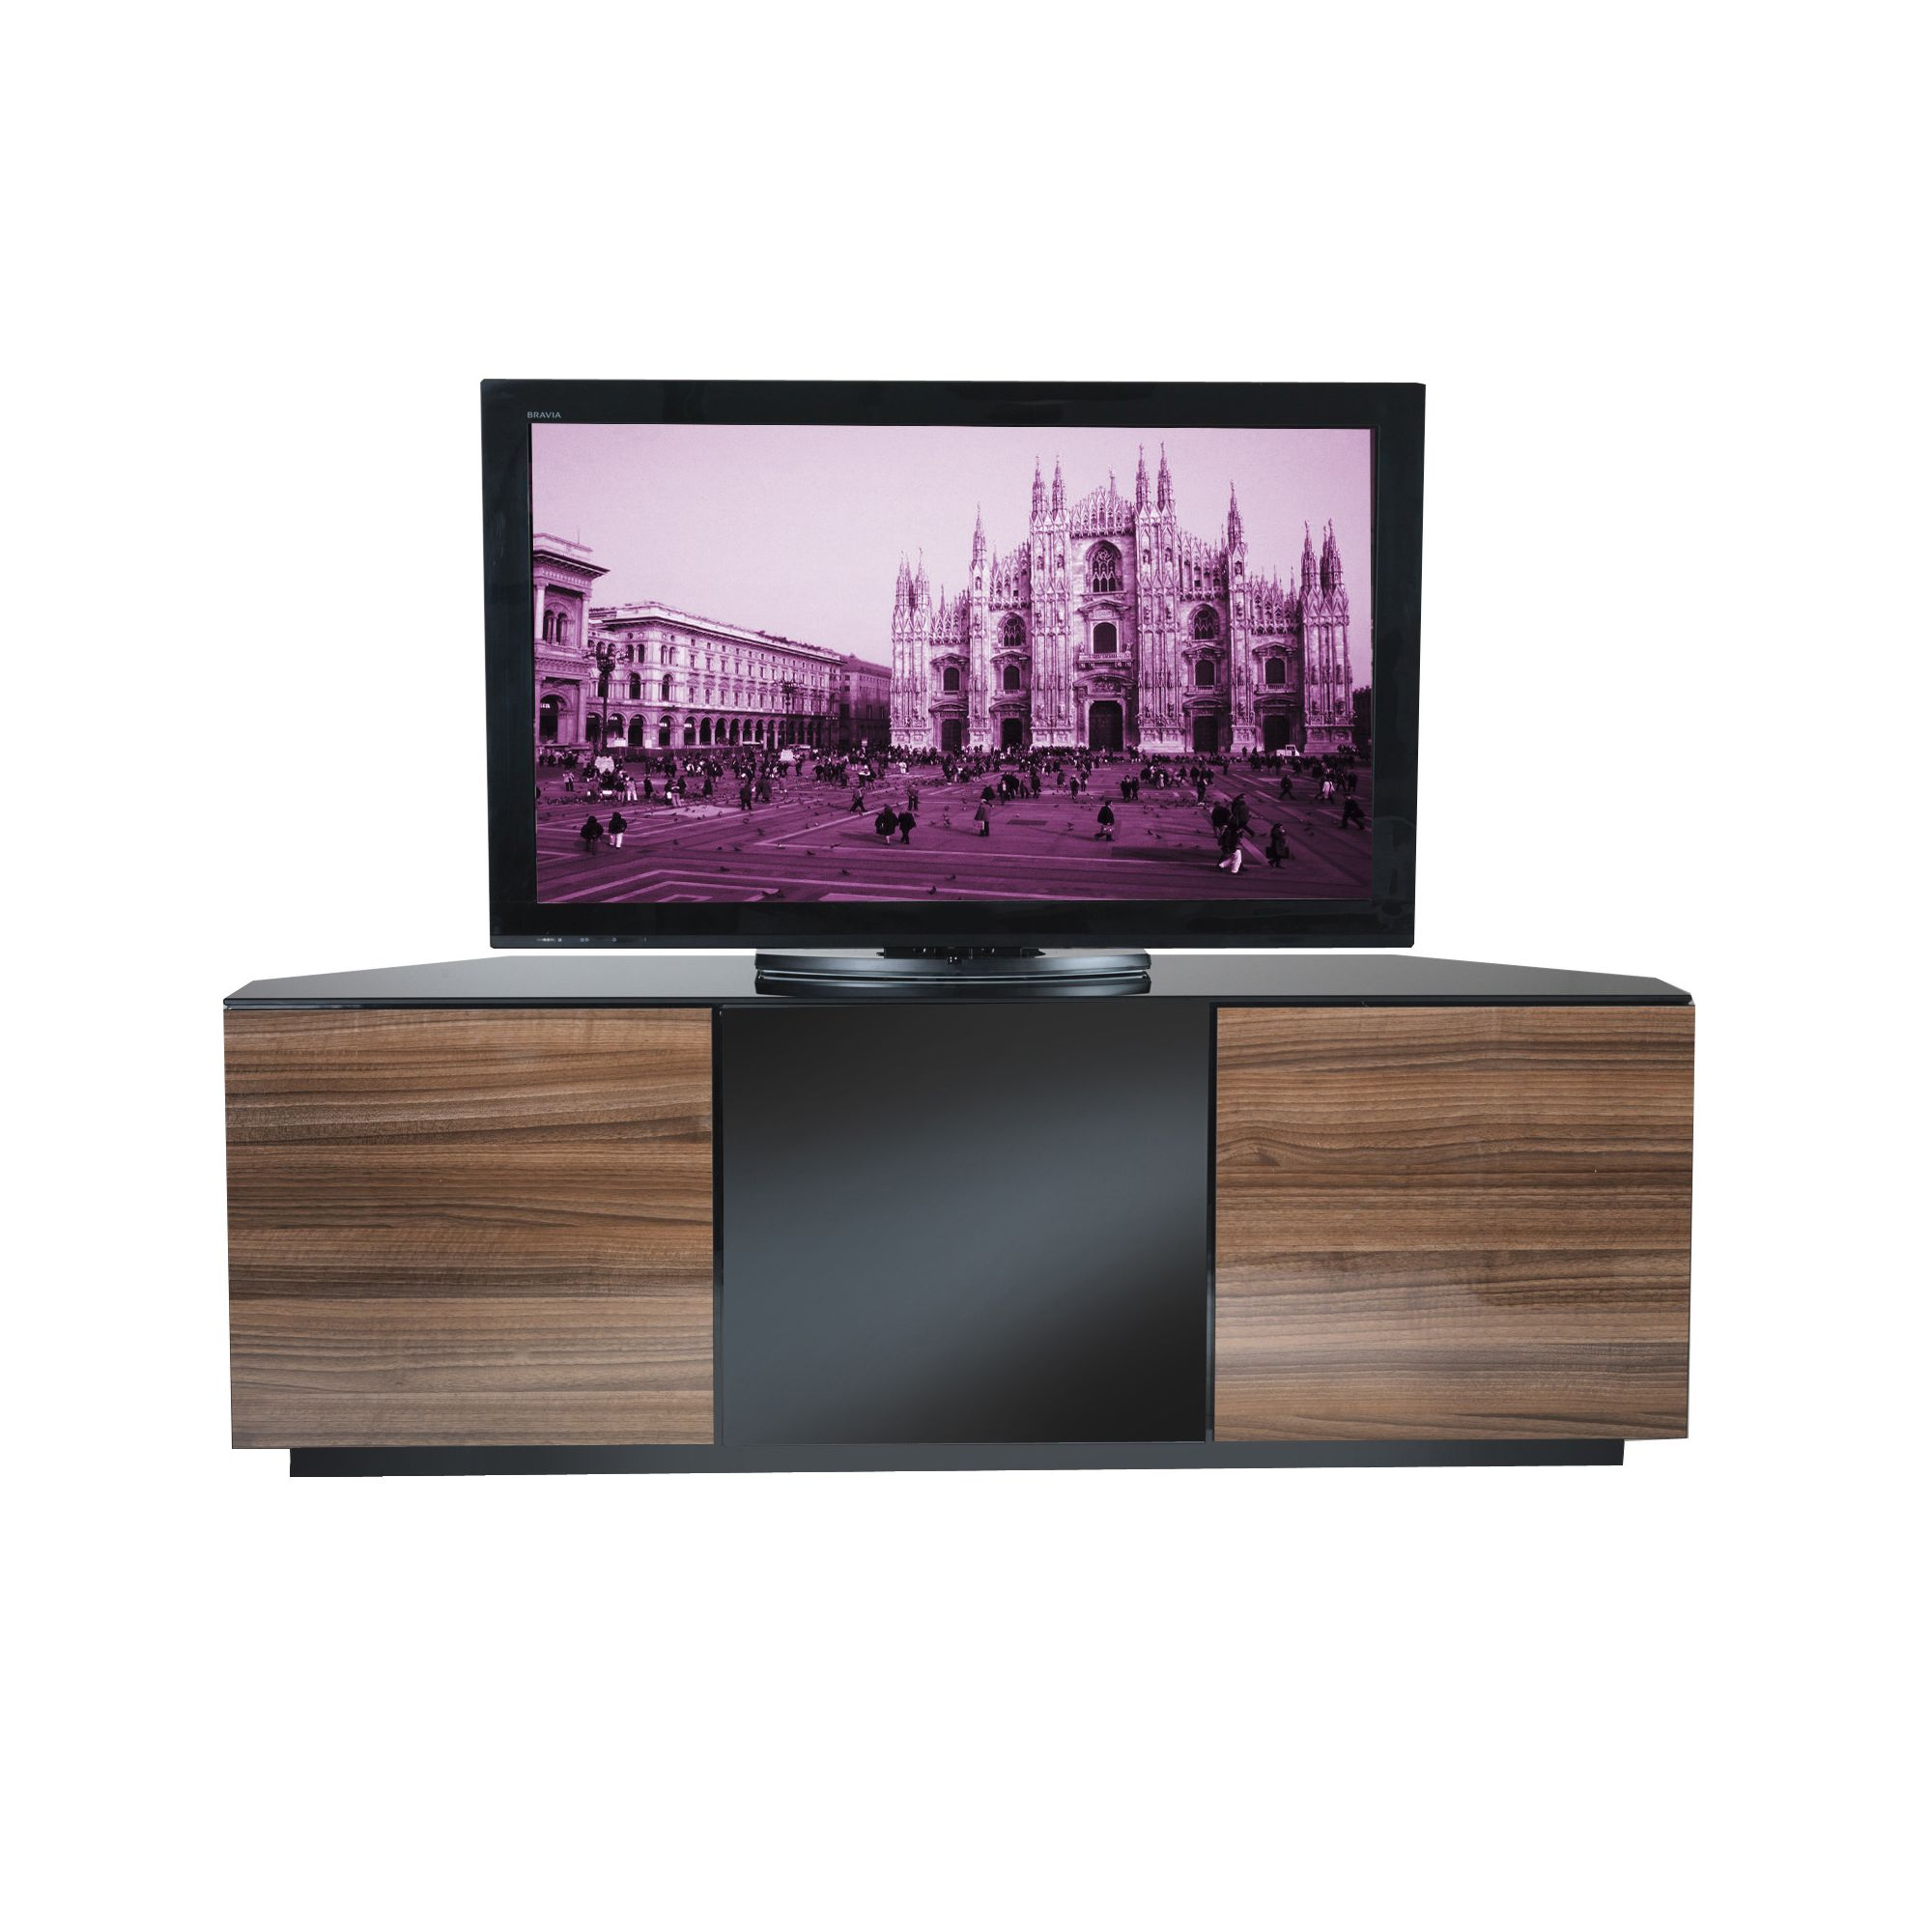 UK-CF City Scape Milan 60'' TV Stand - Walnut at Tesco Direct